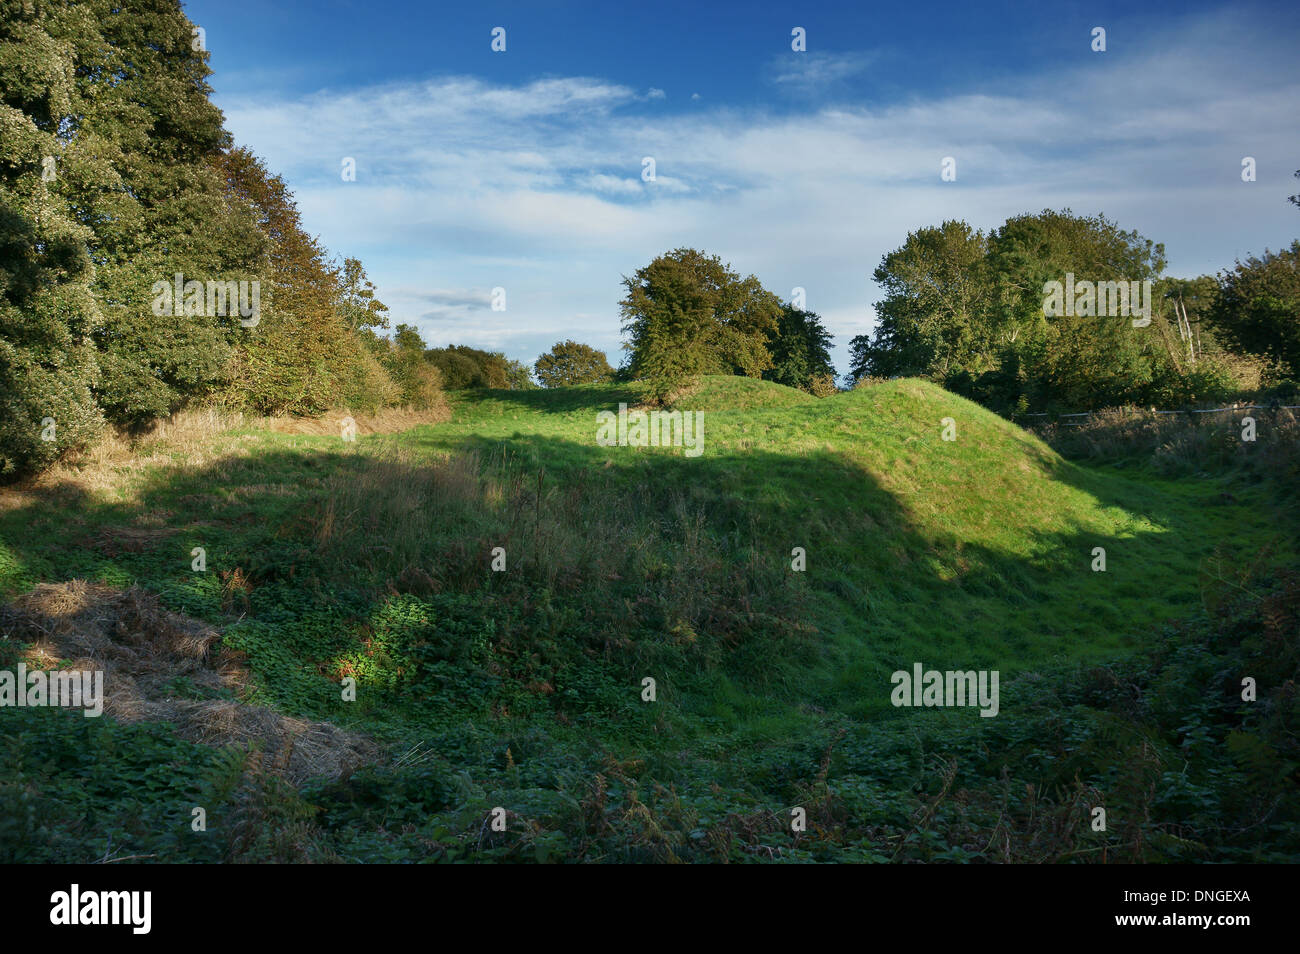 Remains of a Norman Motte at Church Norton, Pagham Harbour, West Sussex, UK - Stock Image